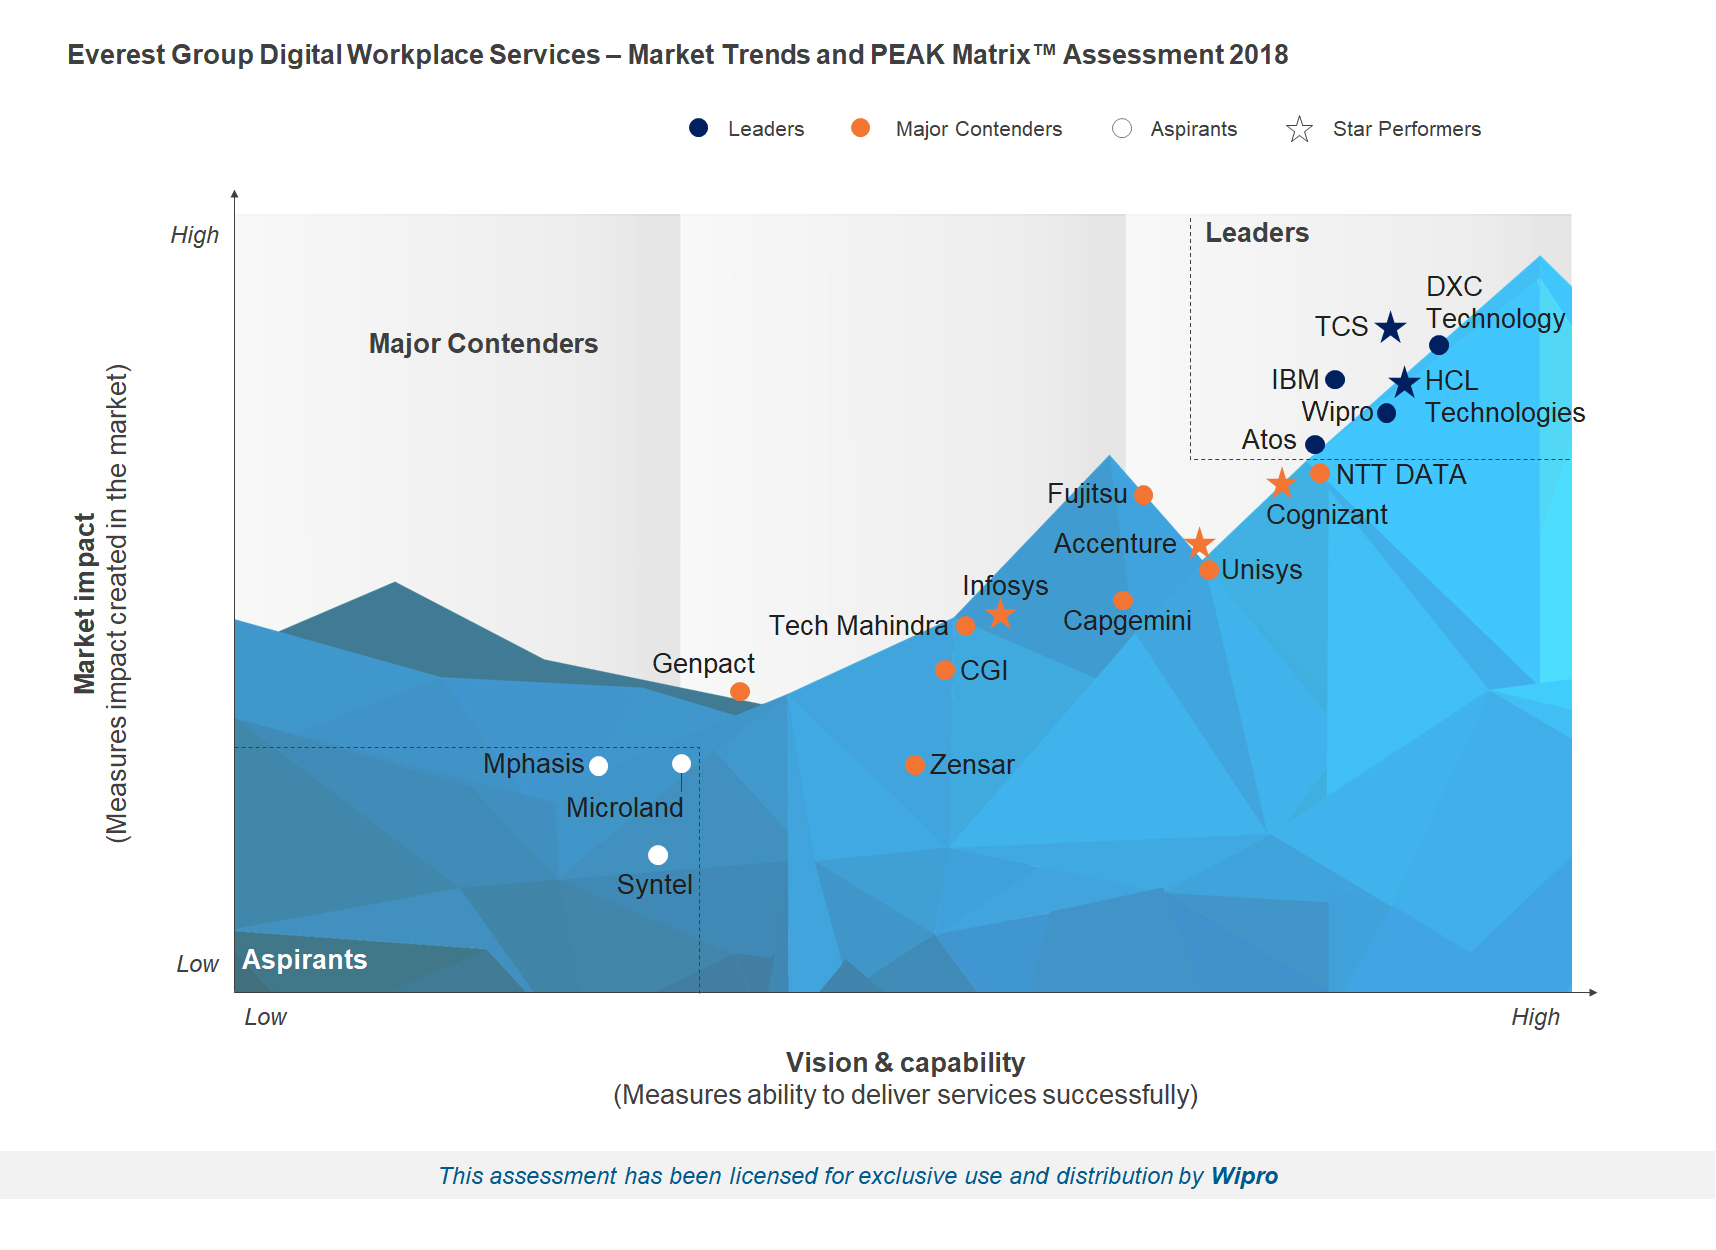 Wipro has emerged as a 'Leader' in Everest Group's PEAK Matrix™ for Digital Workplace Services